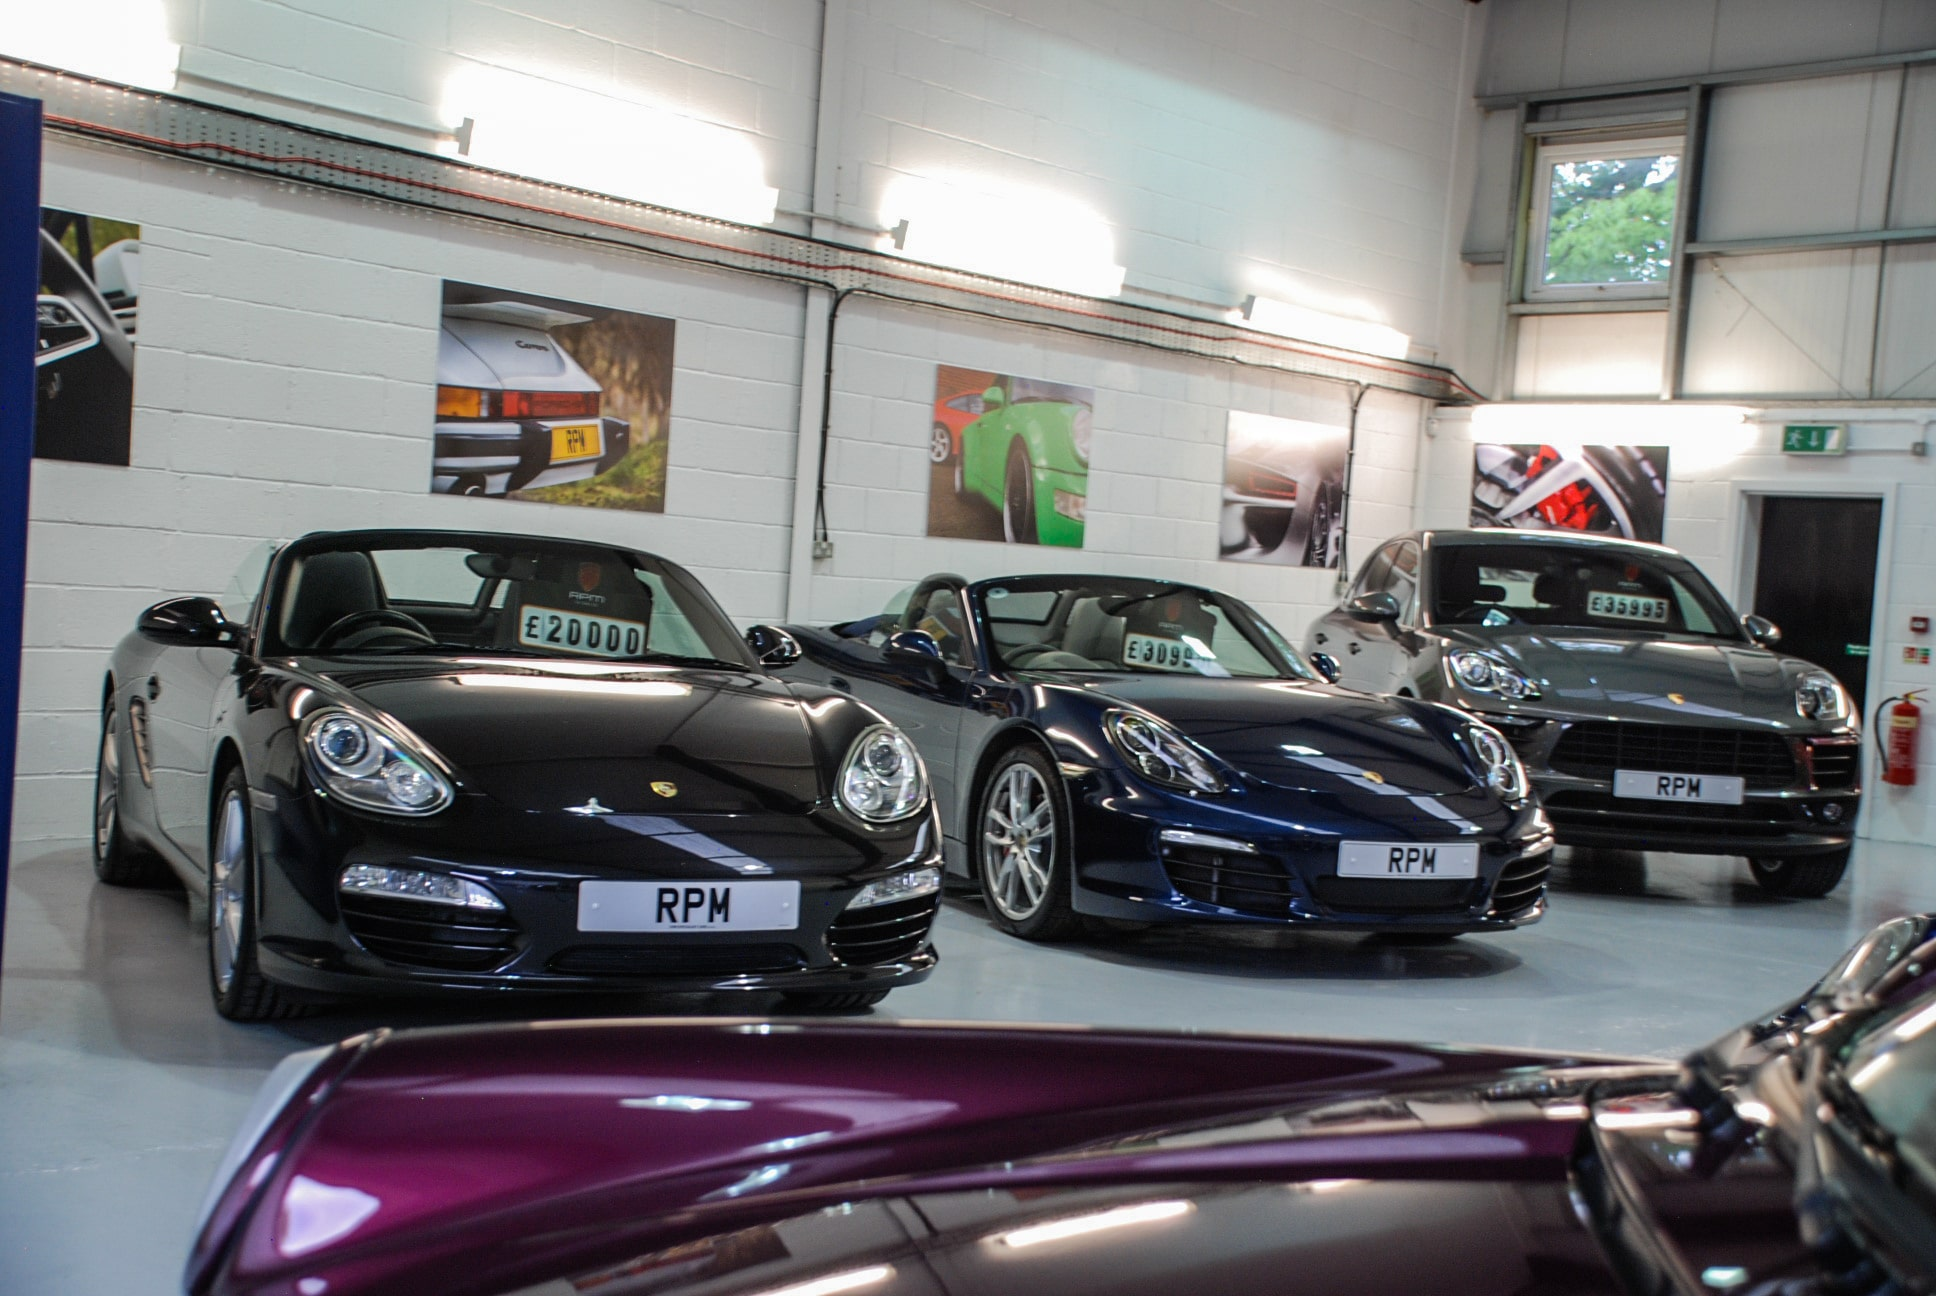 RPM Specialist Cars Porsche Showroom